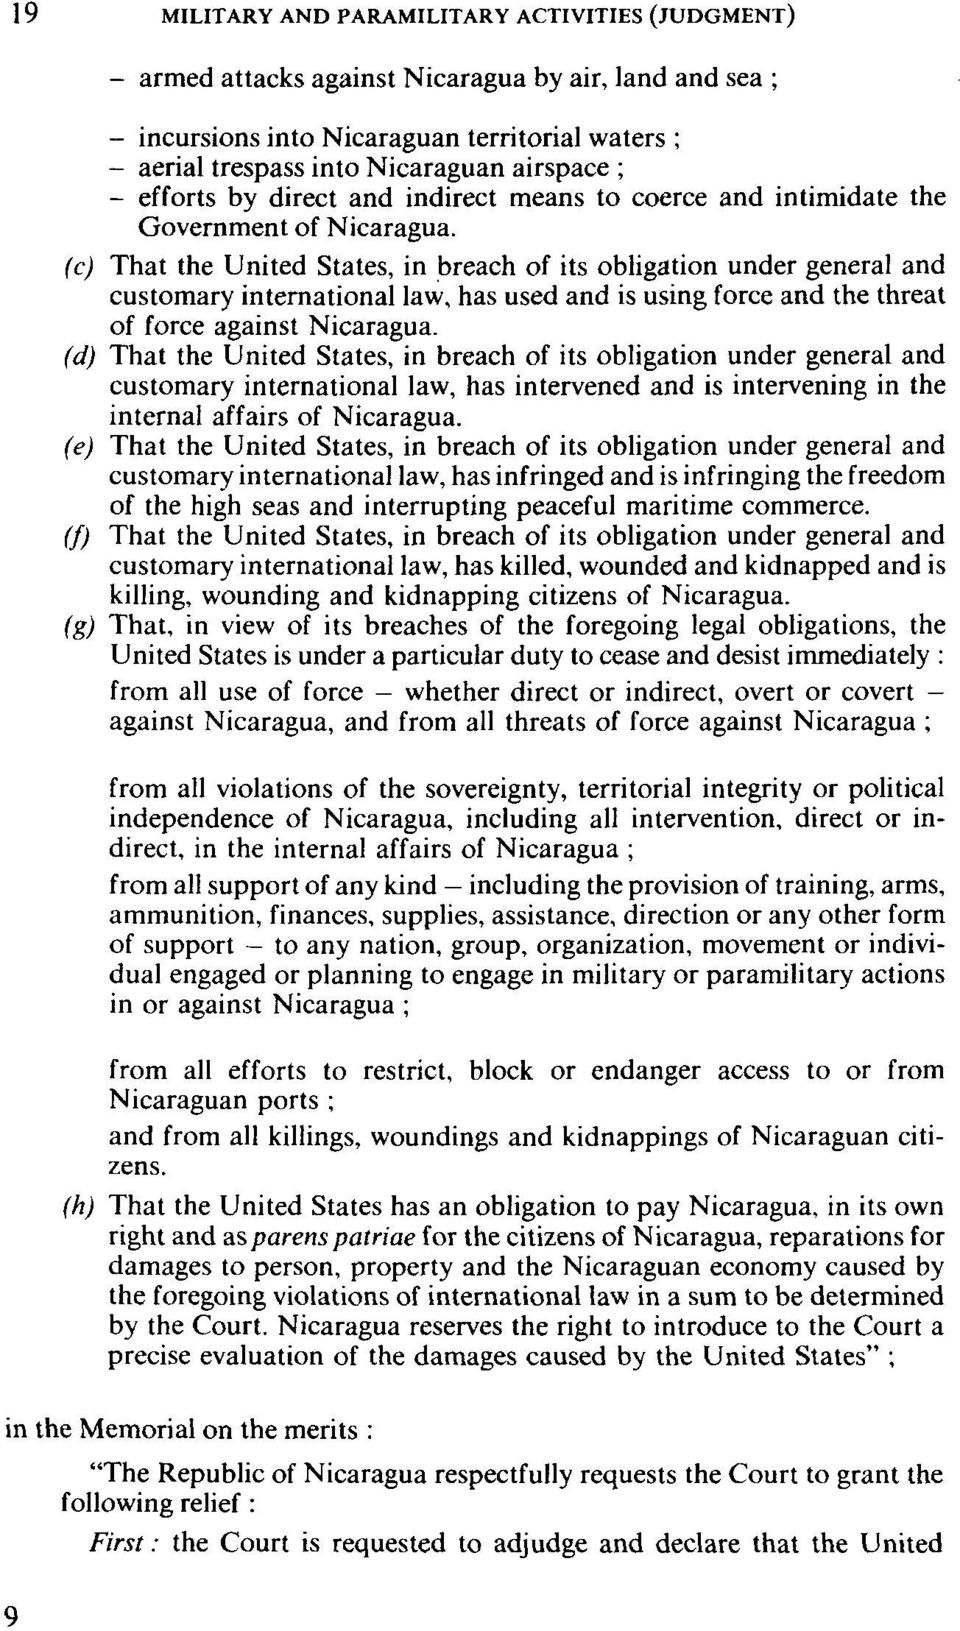 (c) That the United States, in breach of its obligation under general and customary international law, has used and is using force and the threat of force against Nicaragua.